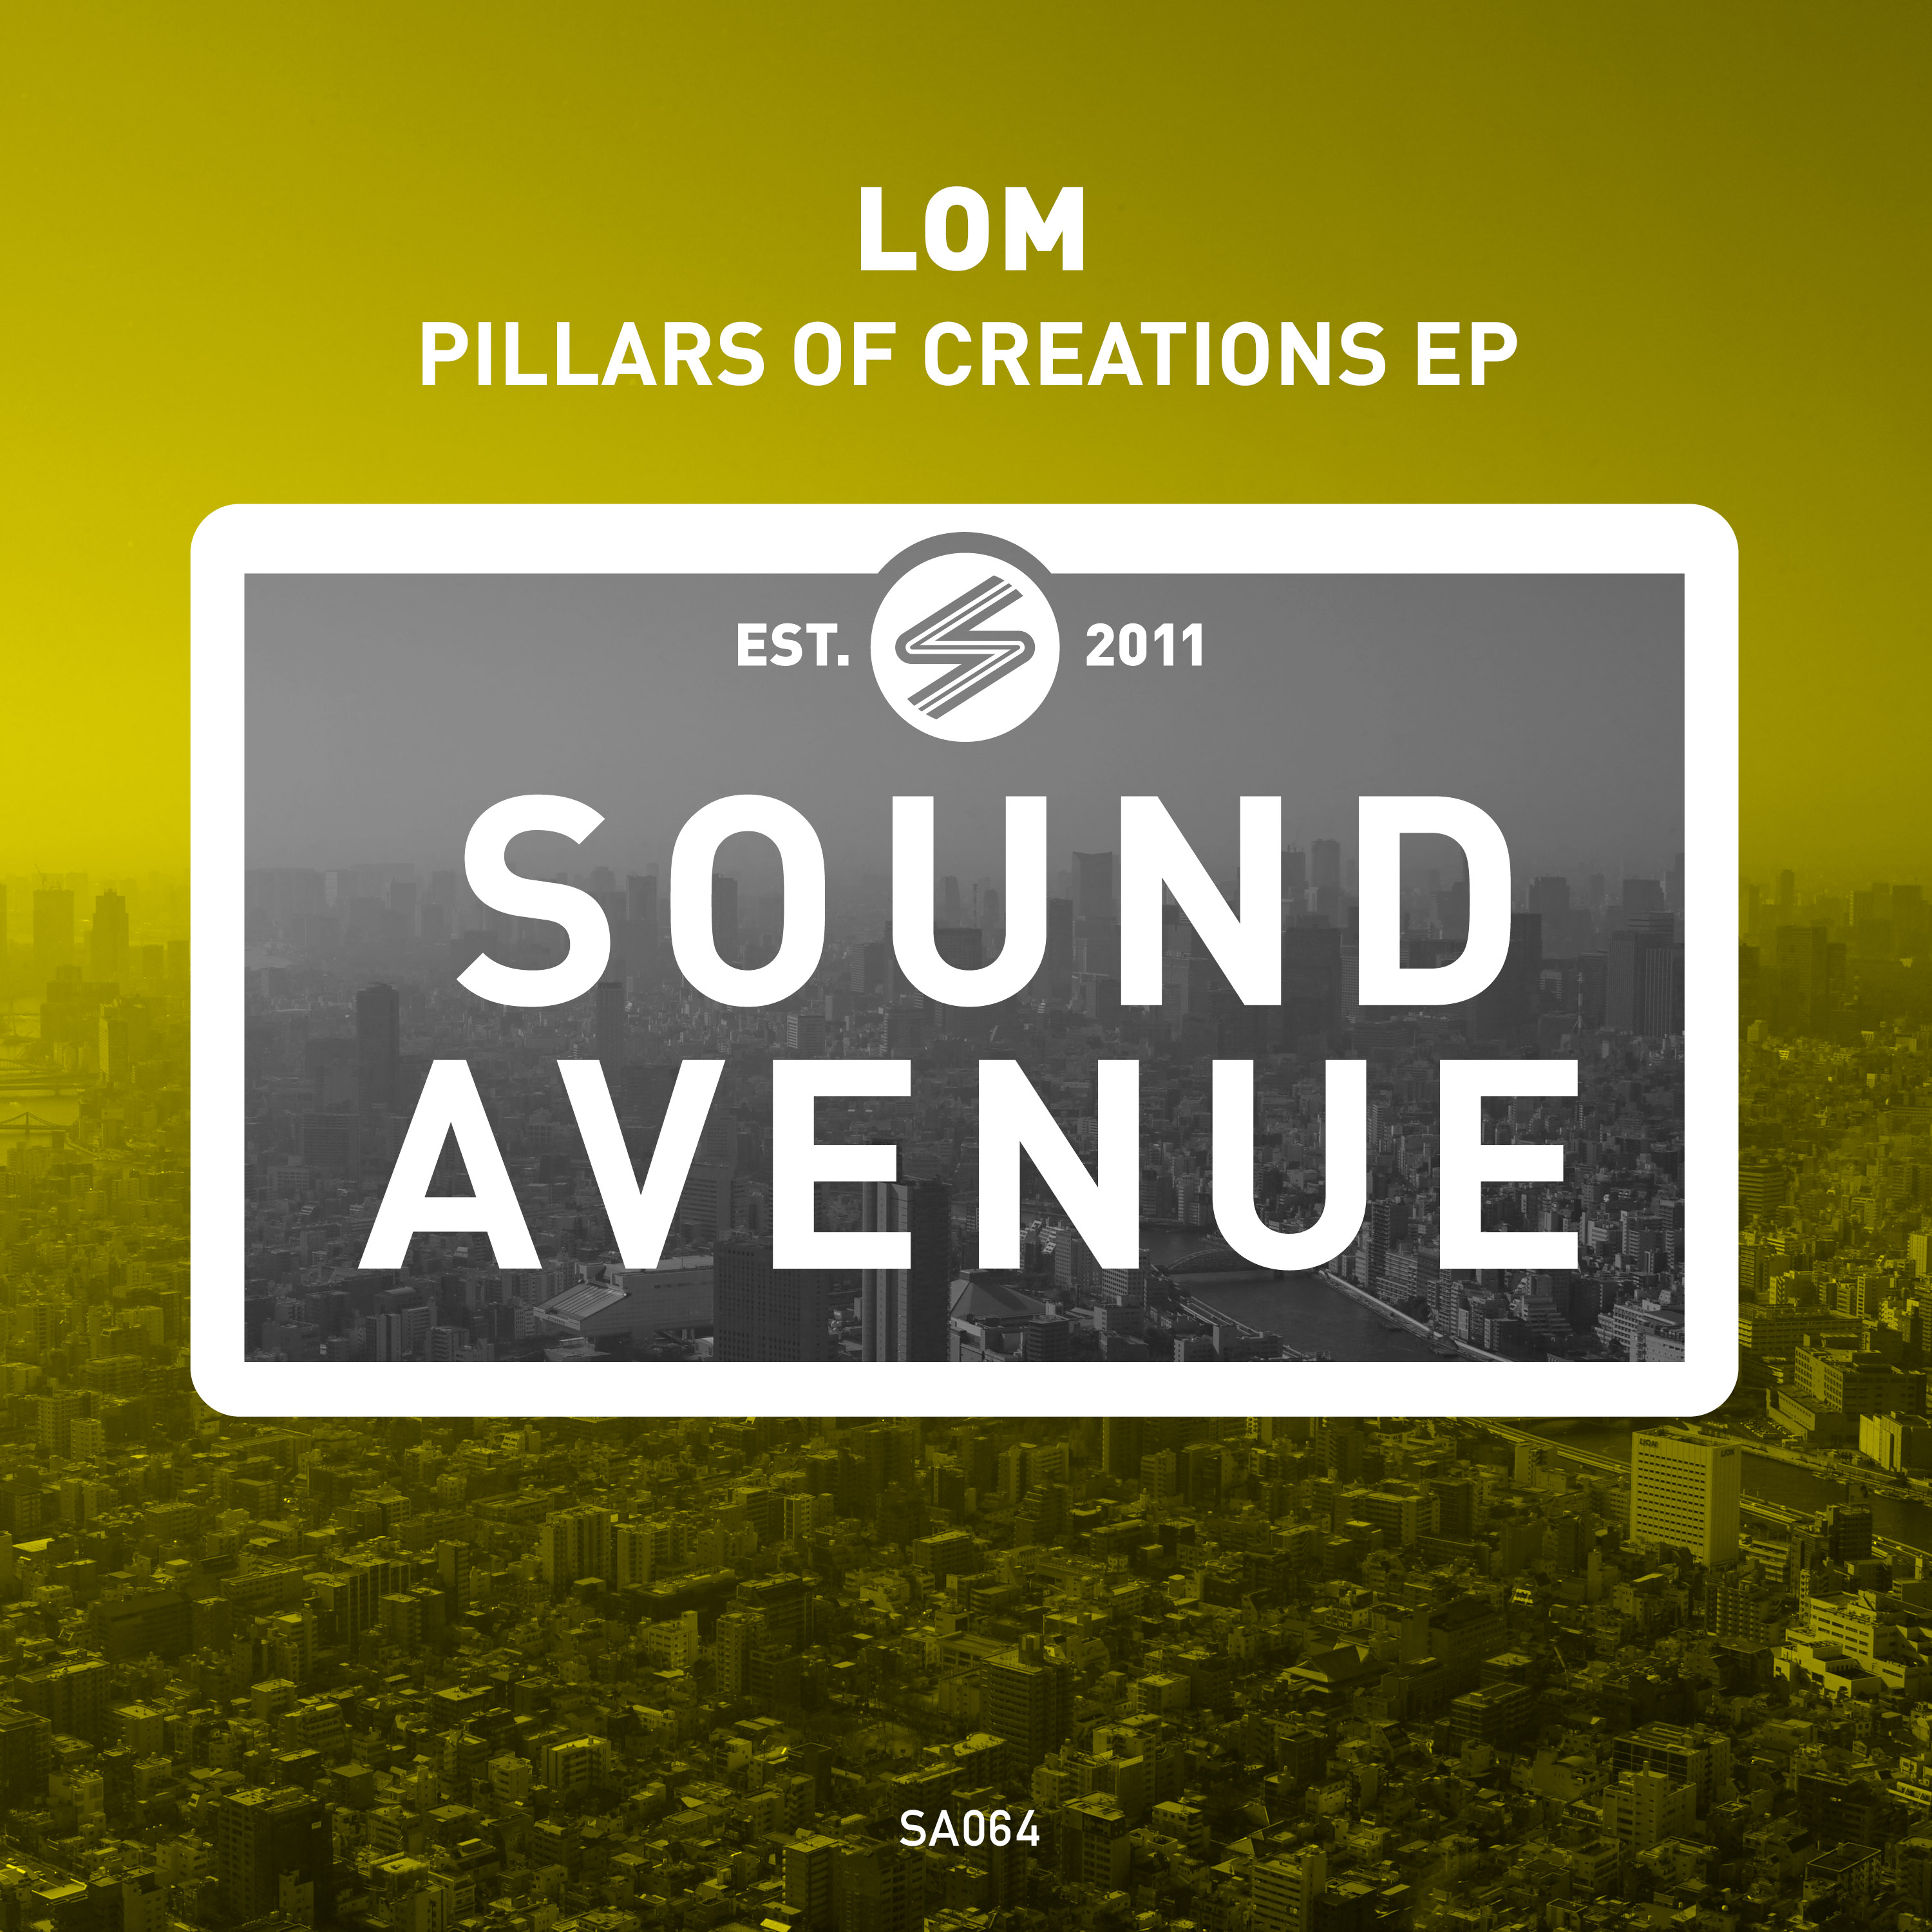 LOM - Pillars of Creations (Sound Avenue)